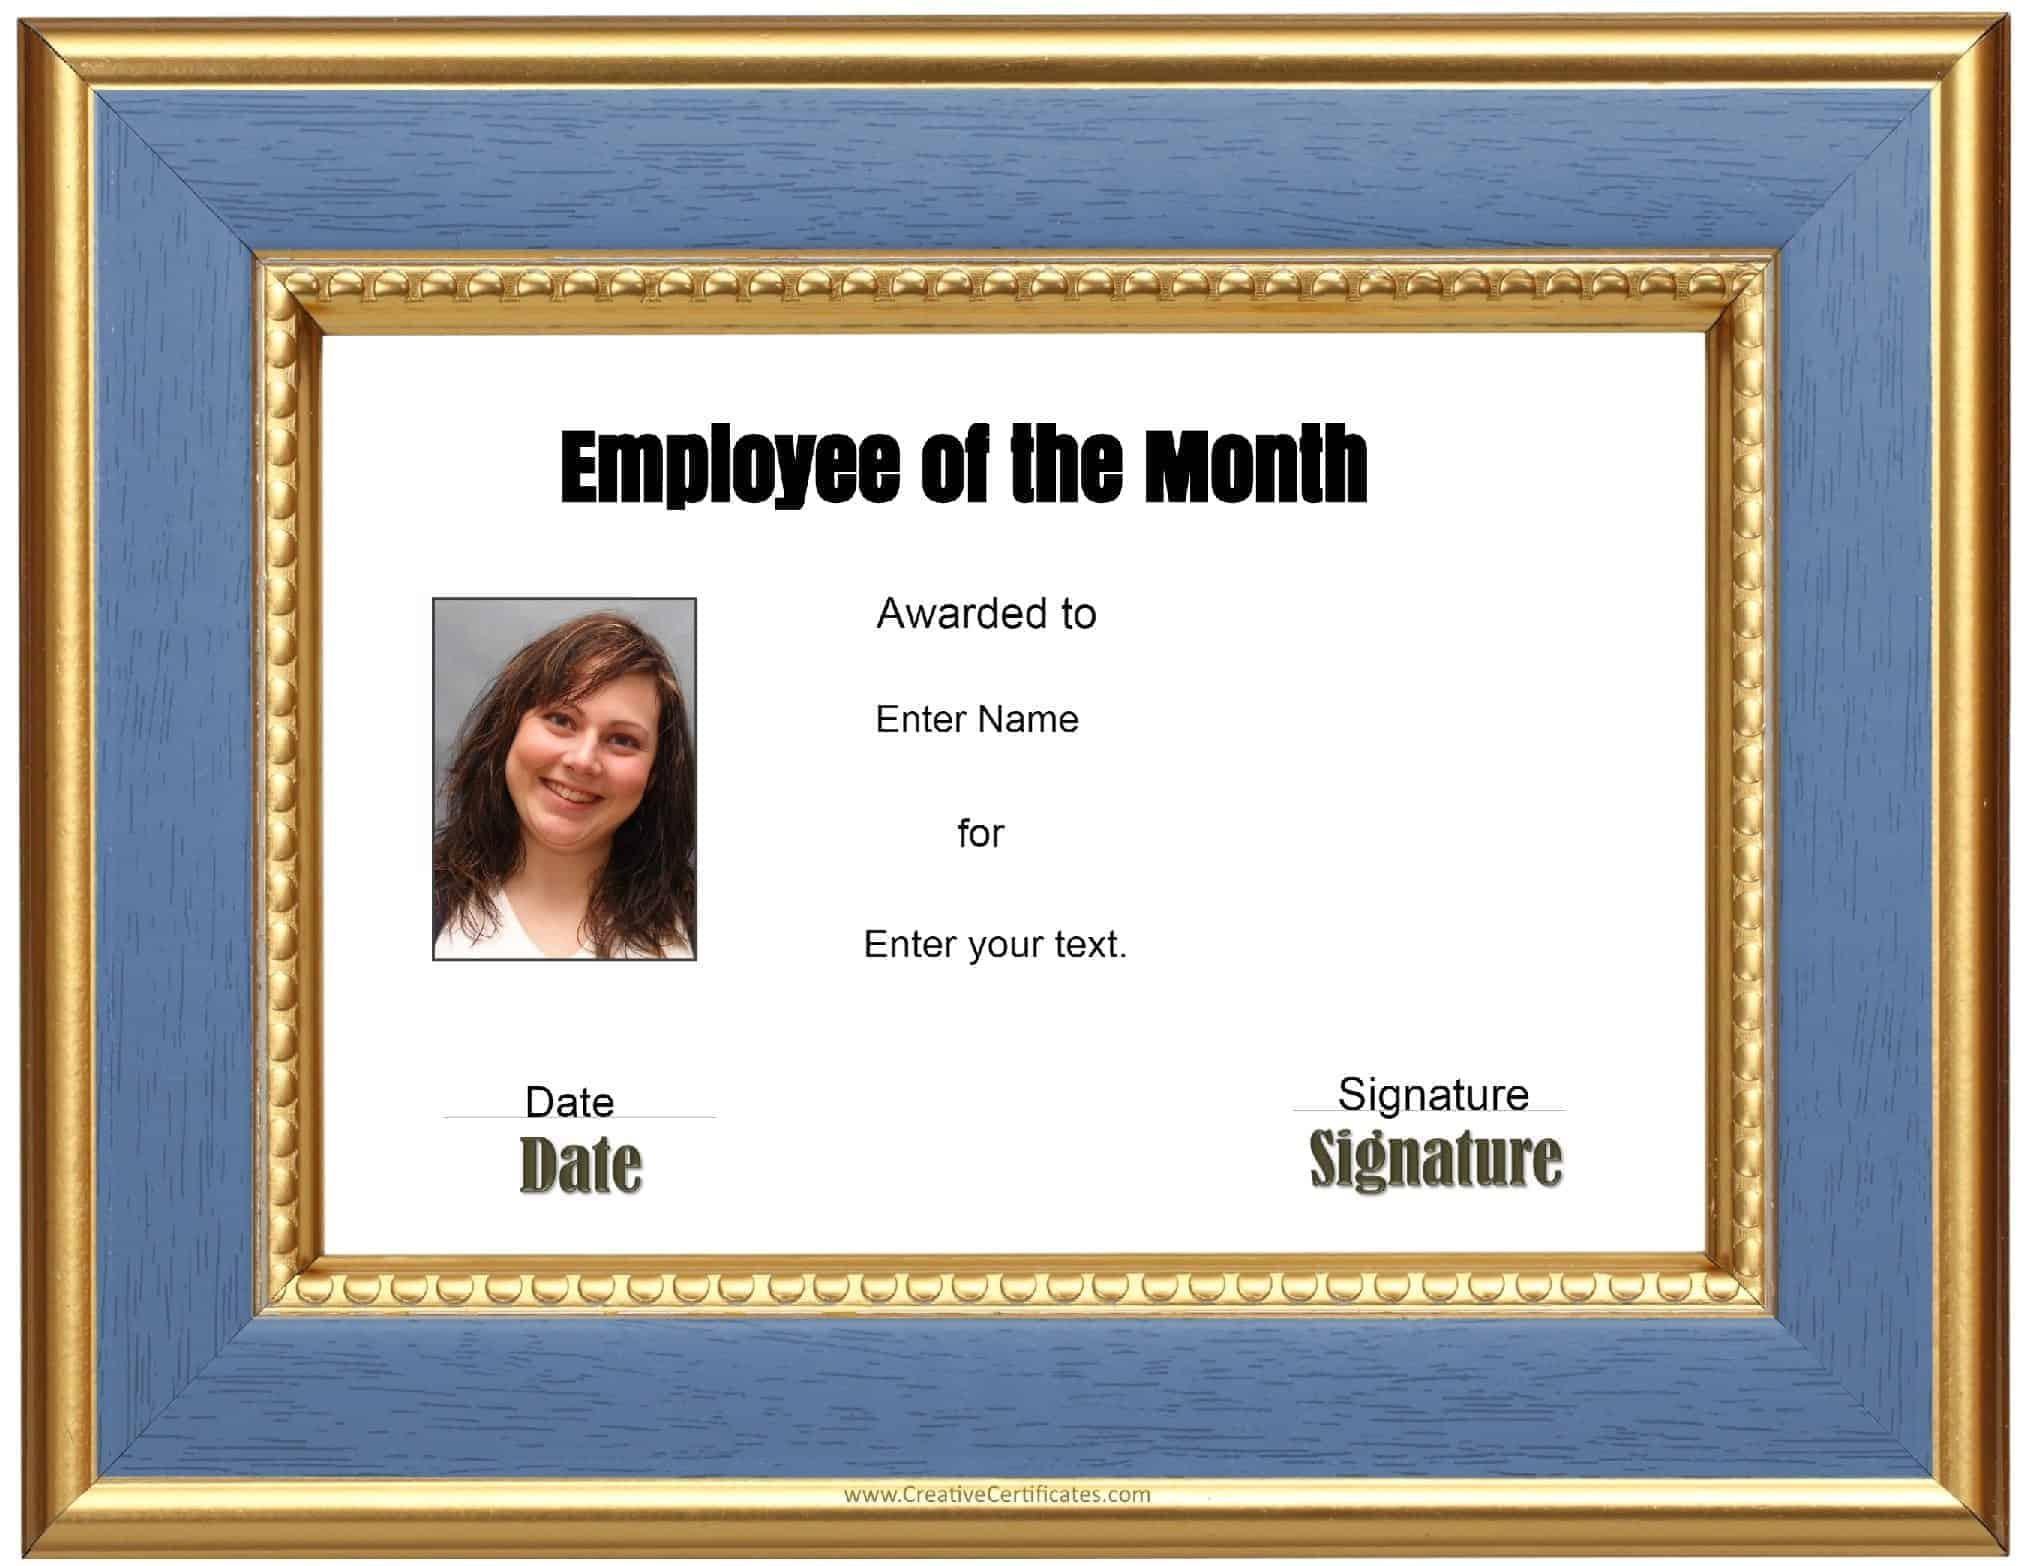 employee of the month template free custom employee of the month certificate 21489 | employee of the month certificate and photo 1